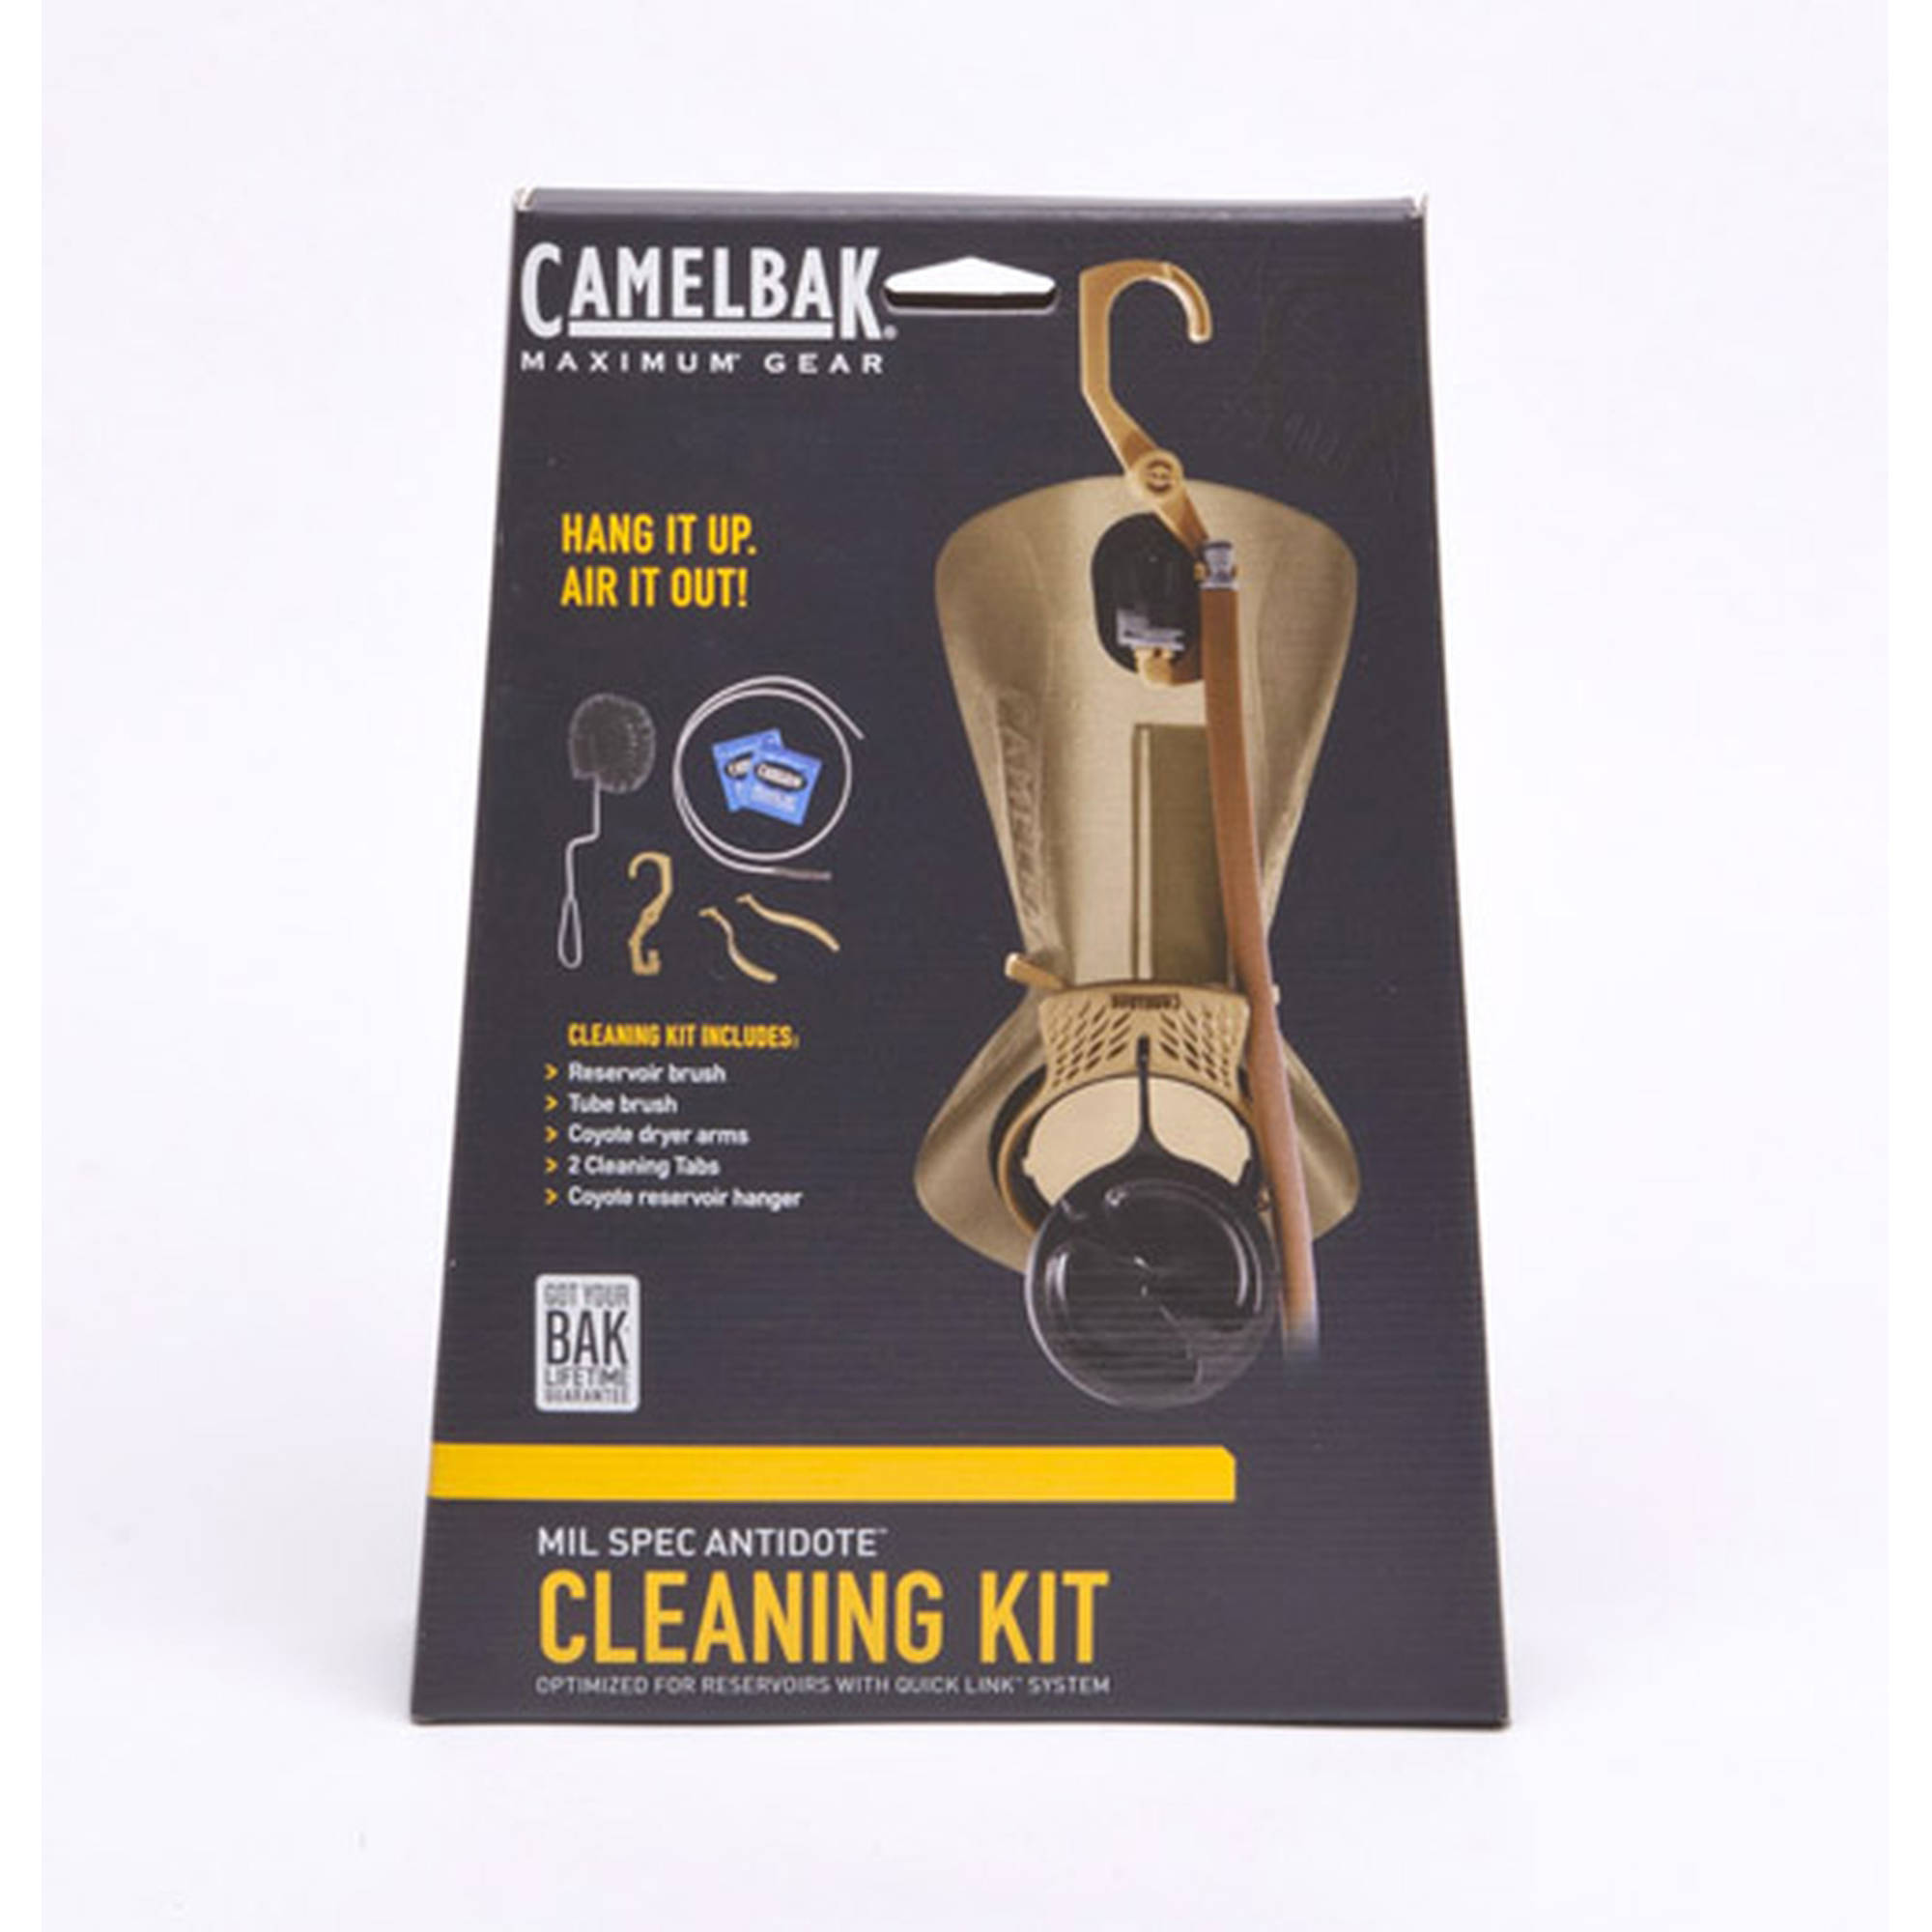 Camelbak MIL SPEC Antidote Cleaning Kit, 90852